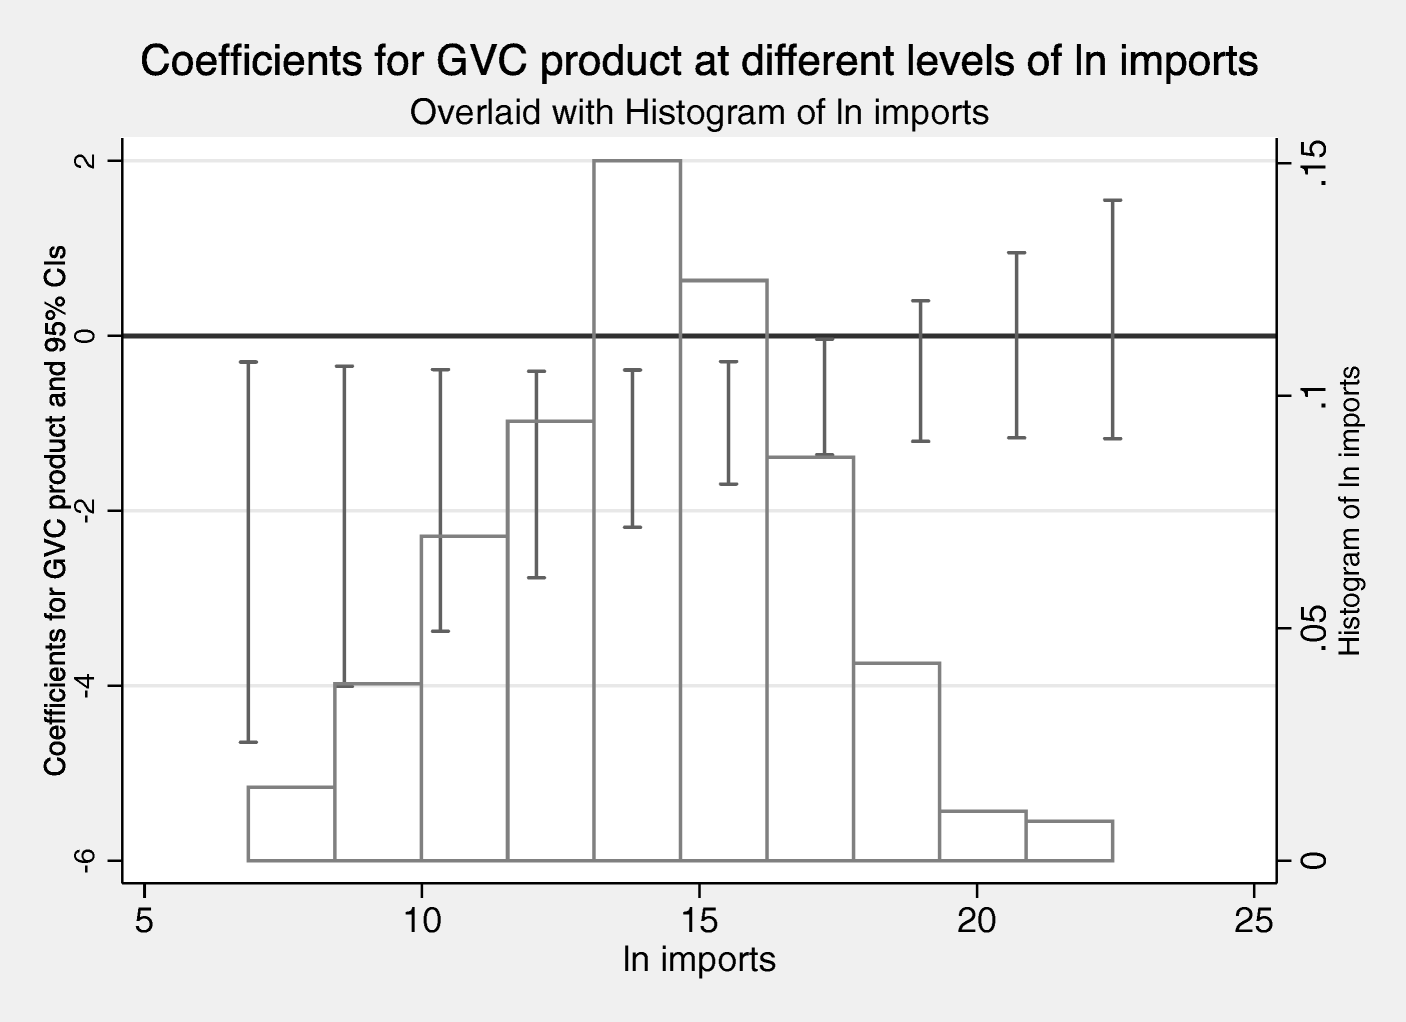 Global value chains and the political economy of WTO